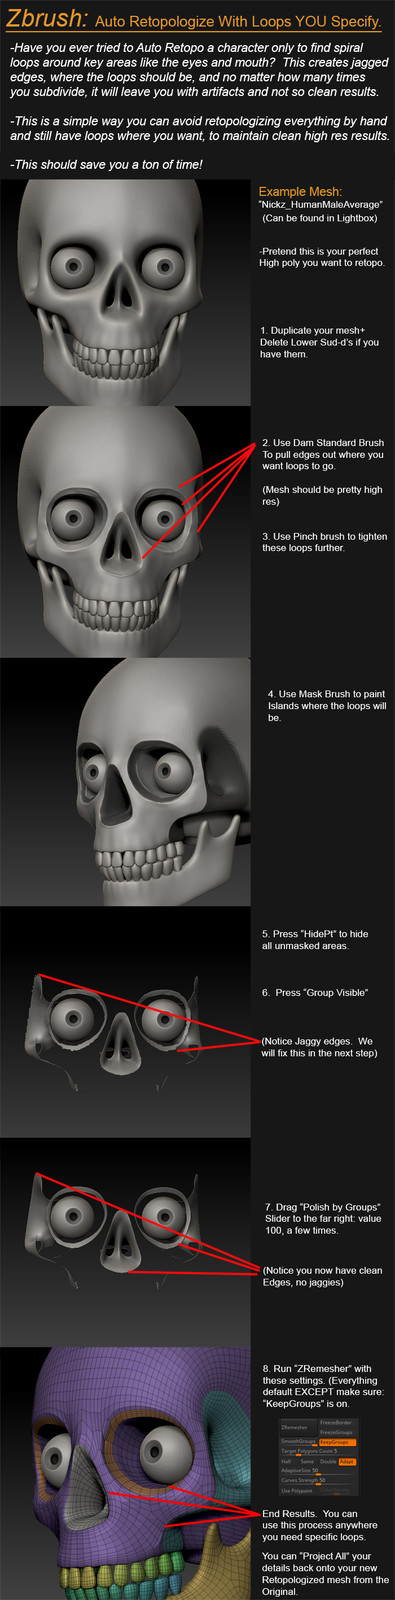 Auto Retopologize Tutorial with Specified Loops.